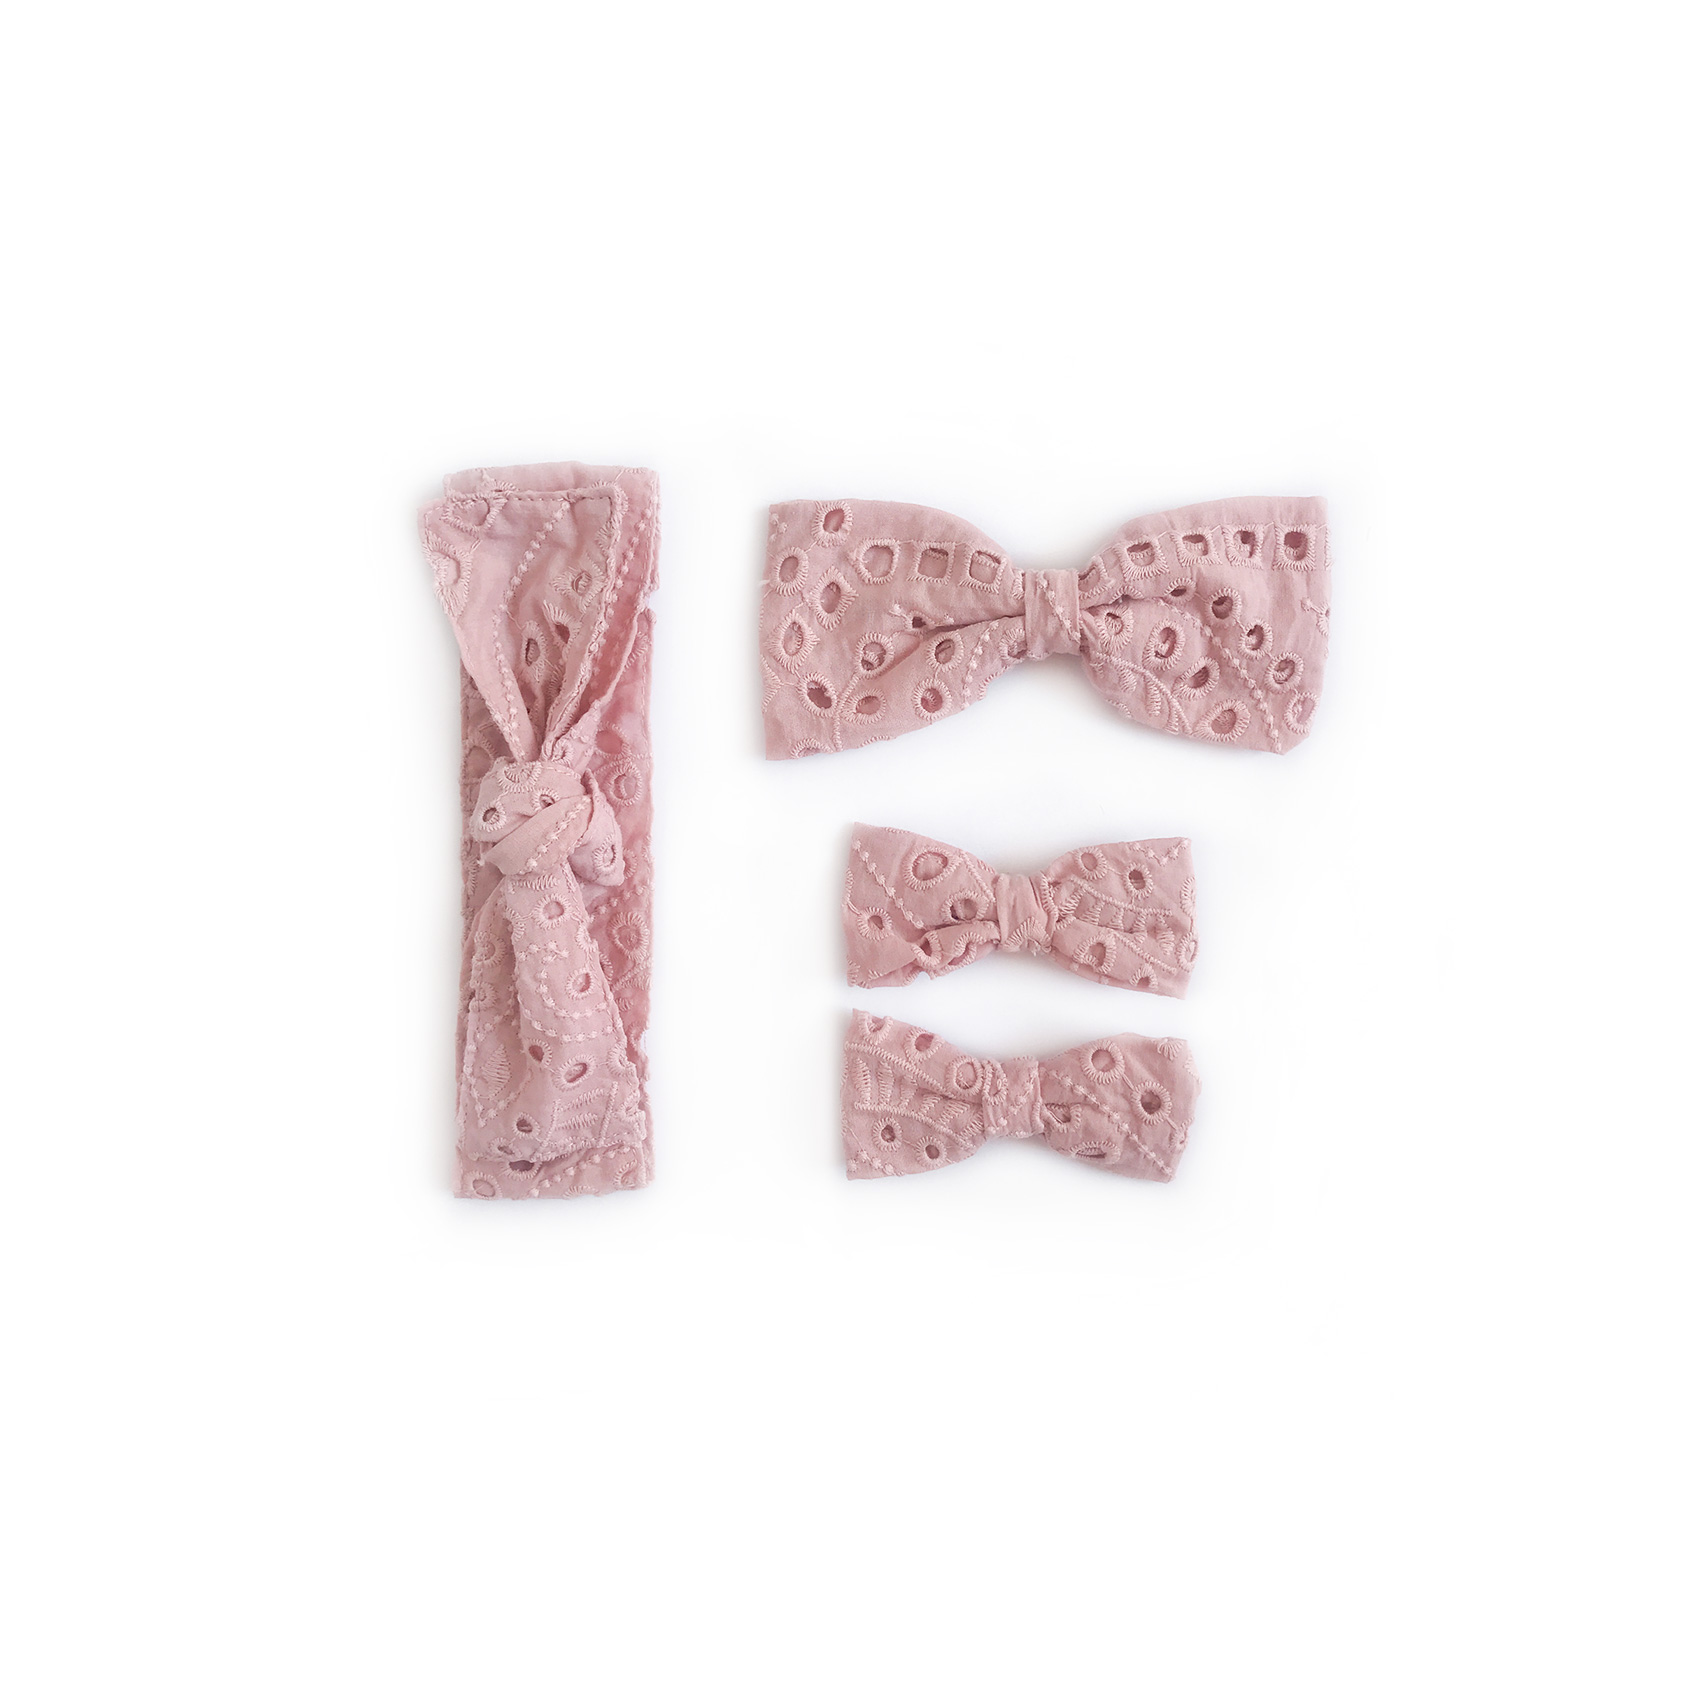 Dusty Rose Broderie Anglaise Accessories